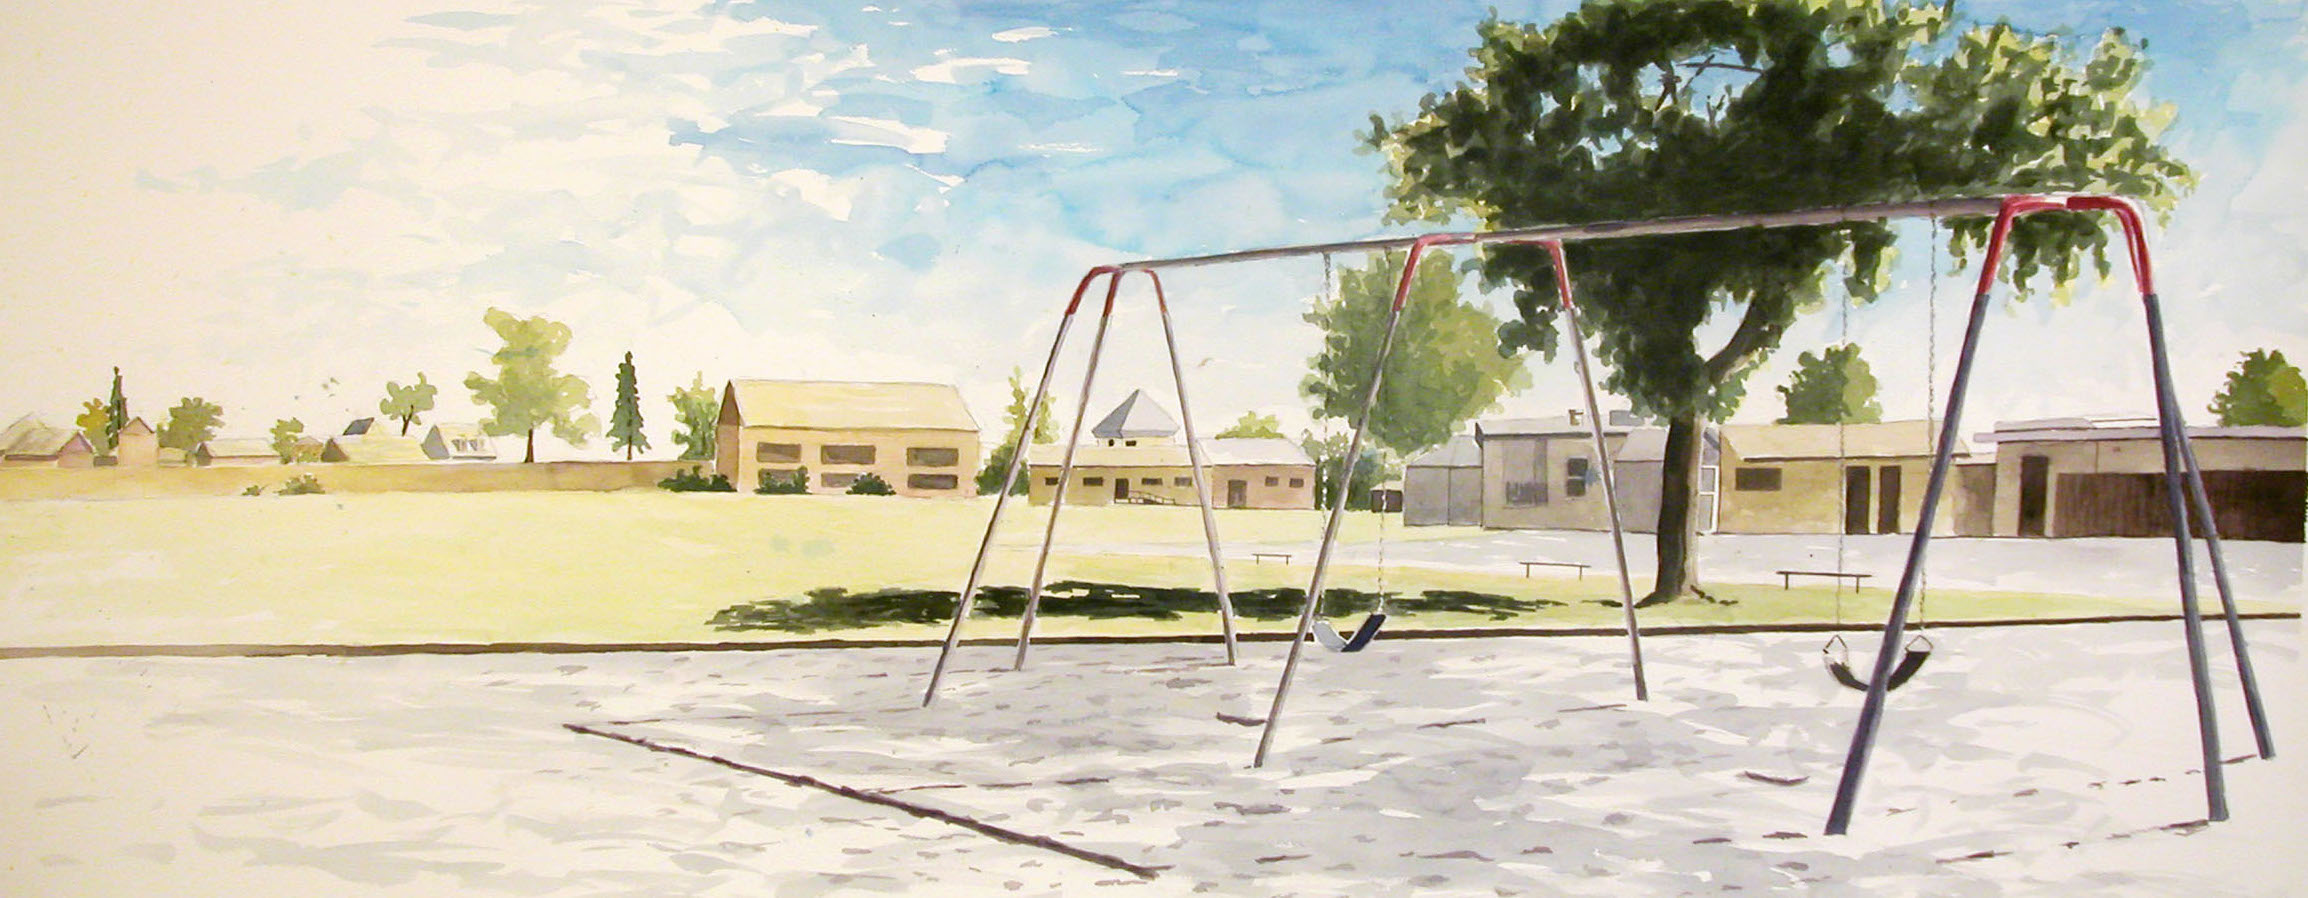 Swings, 2003, Watercolor, 30 x 62